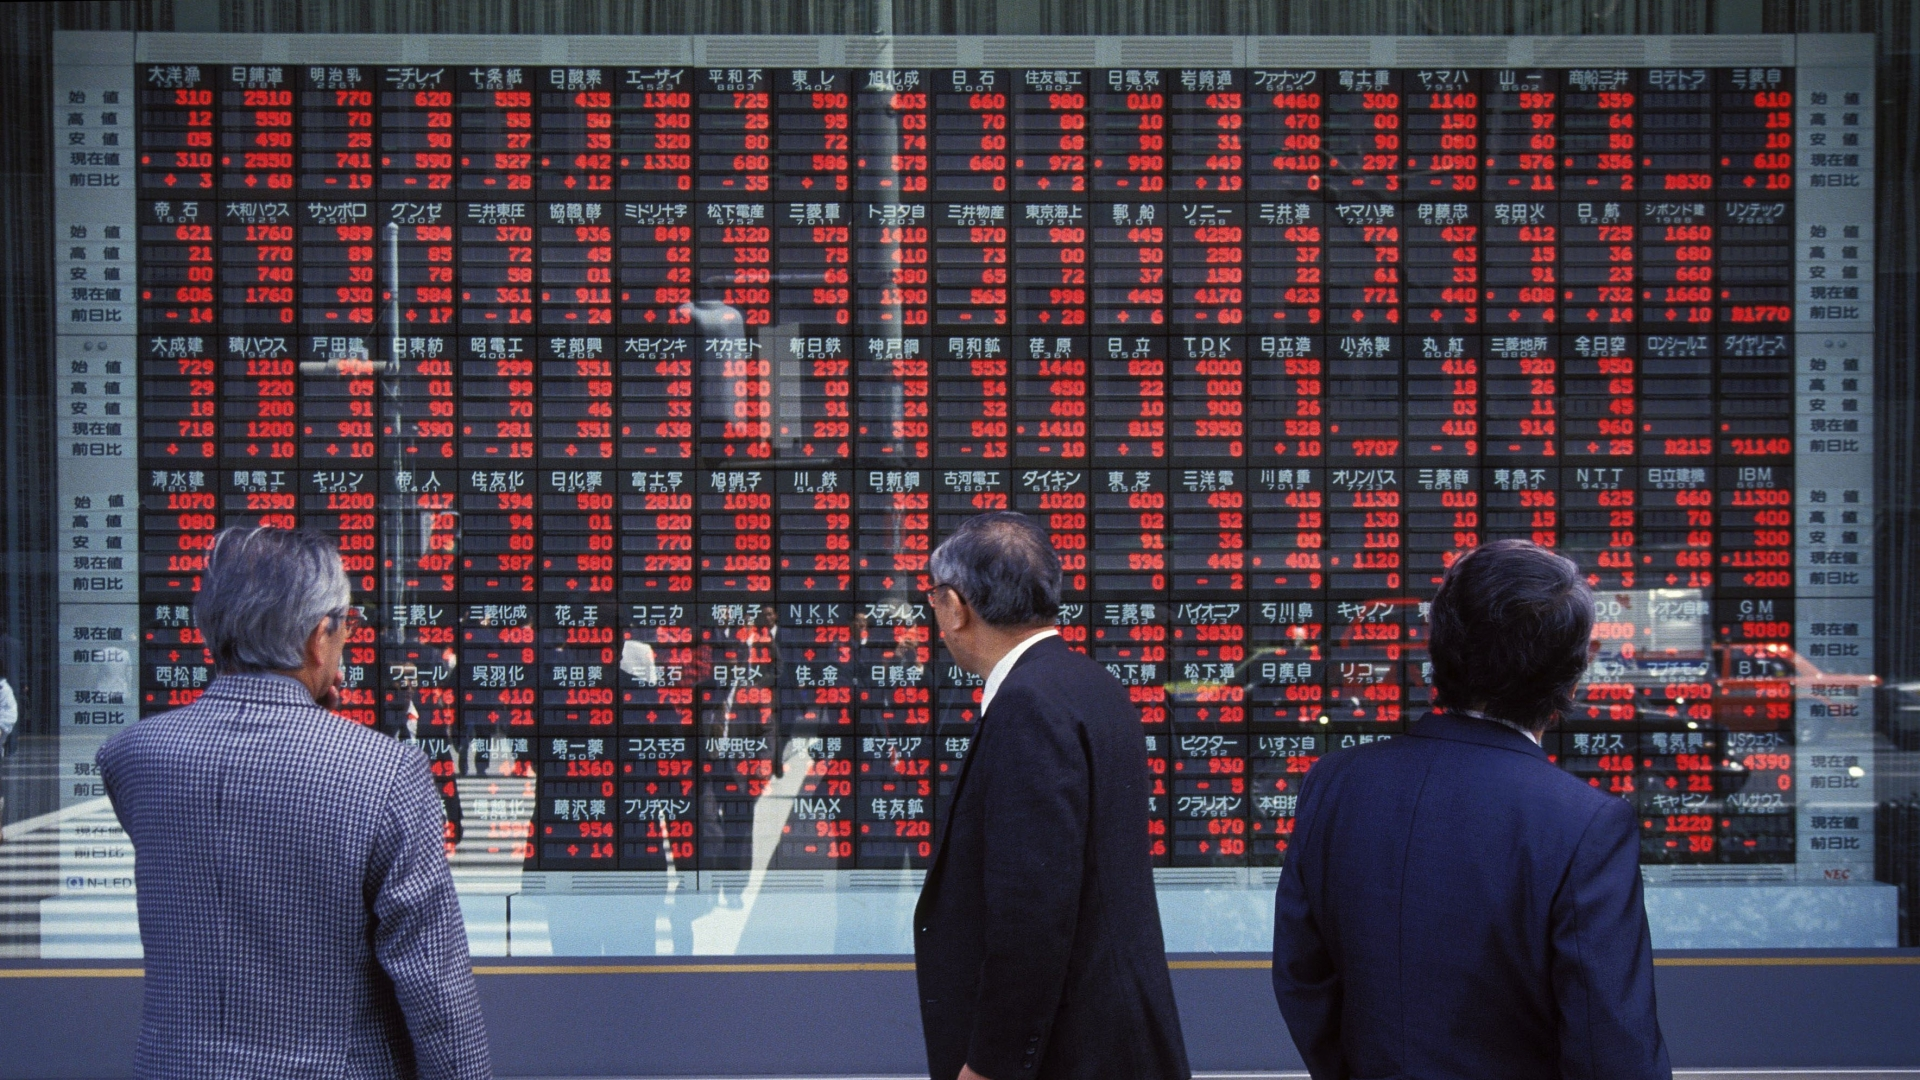 Stock Market Of Tokyo, 1992. (Credit: Kurita KAKU/Gamma-Rapho via Getty Images)